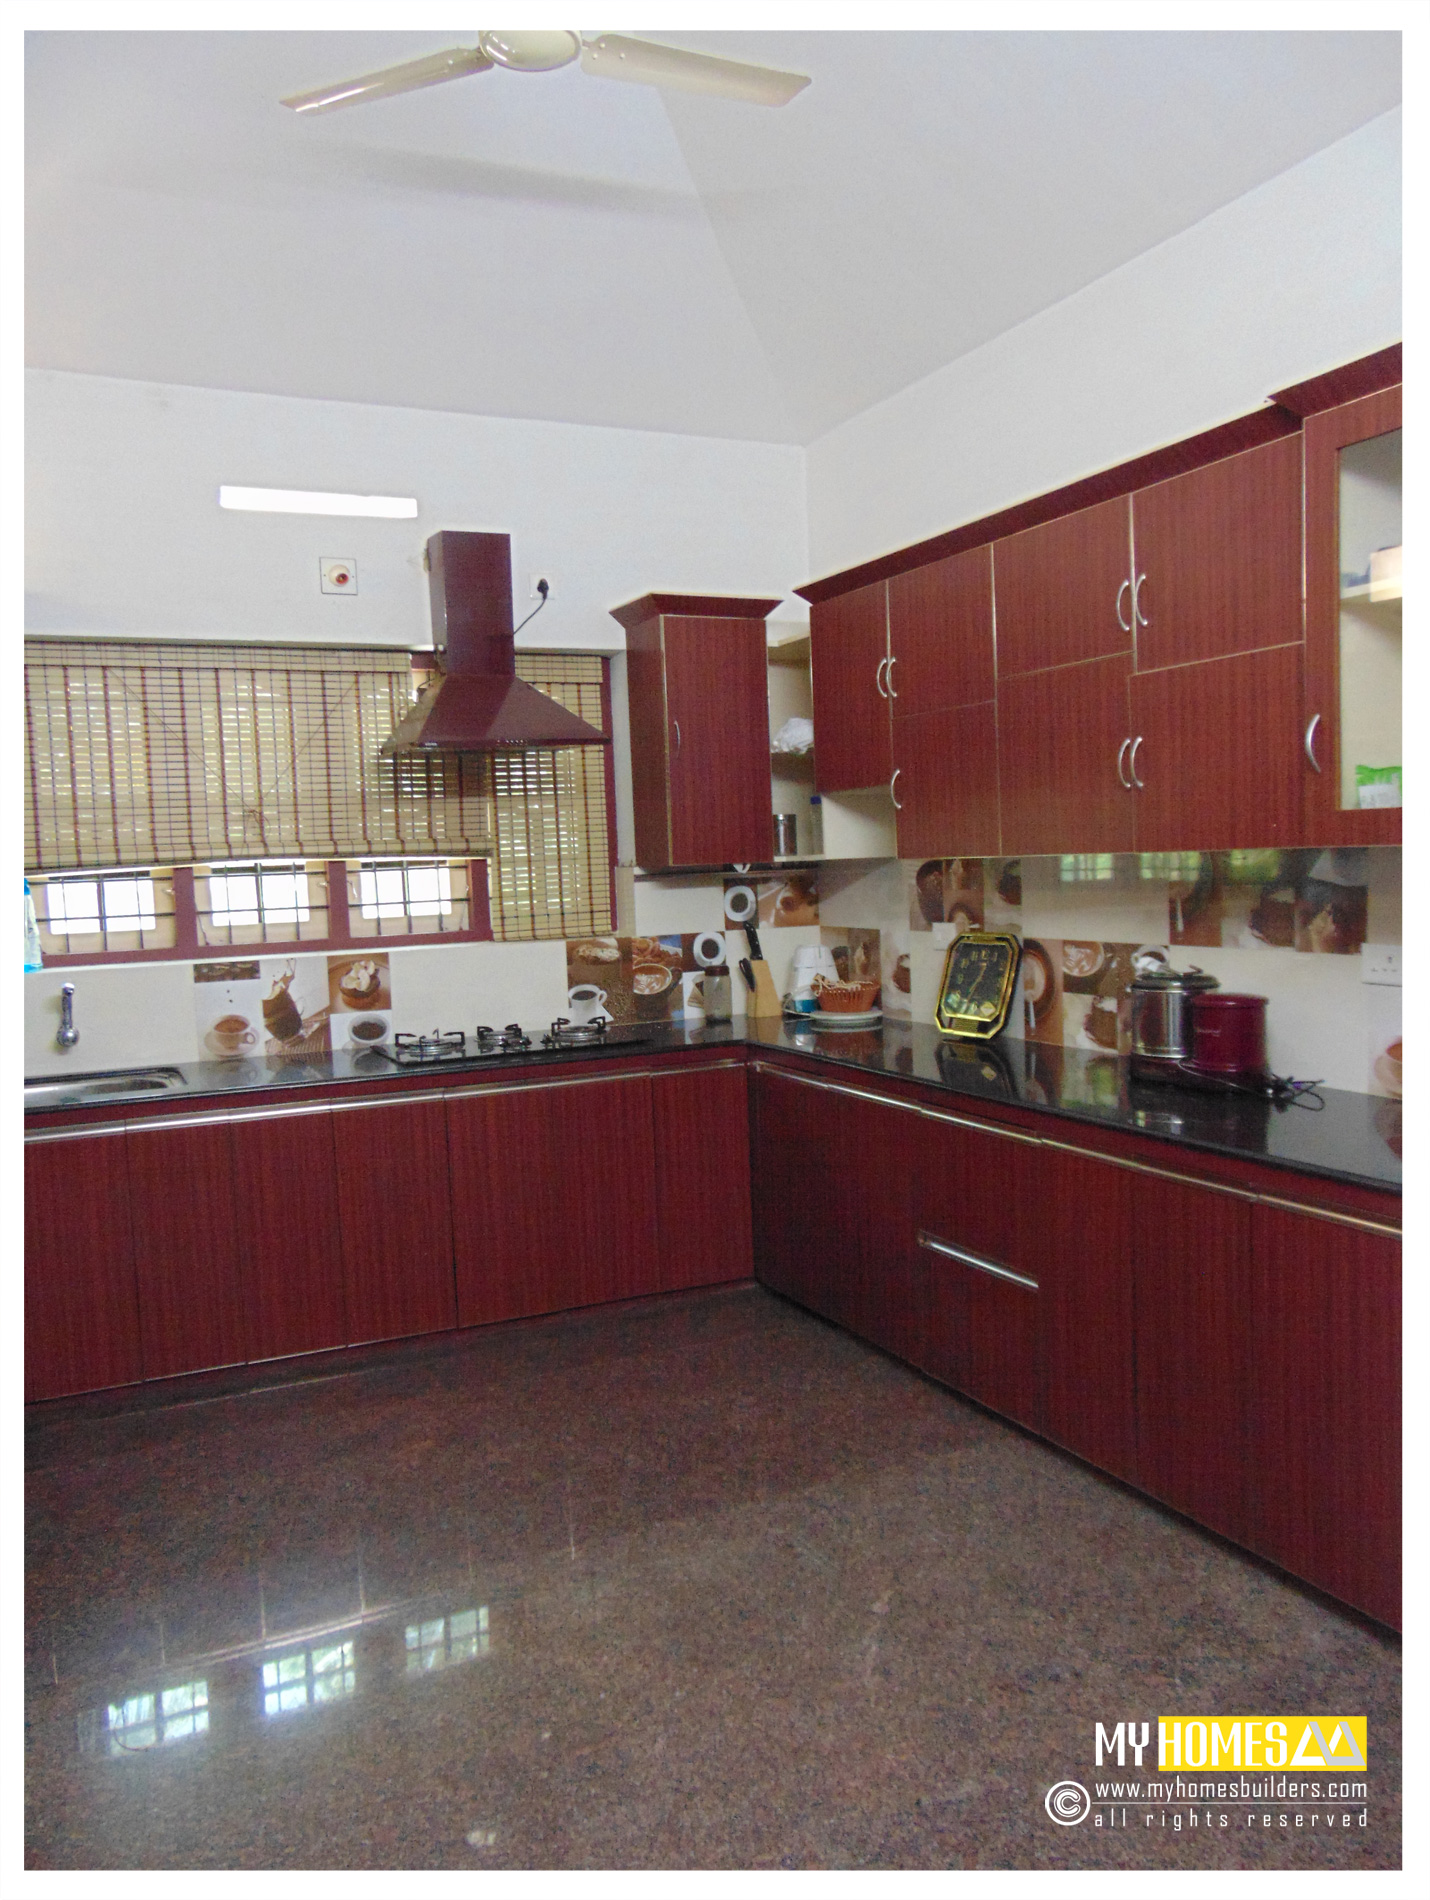 keral homes kitchen, homes kitchen designs, keral house kitchen design, kitchen interior